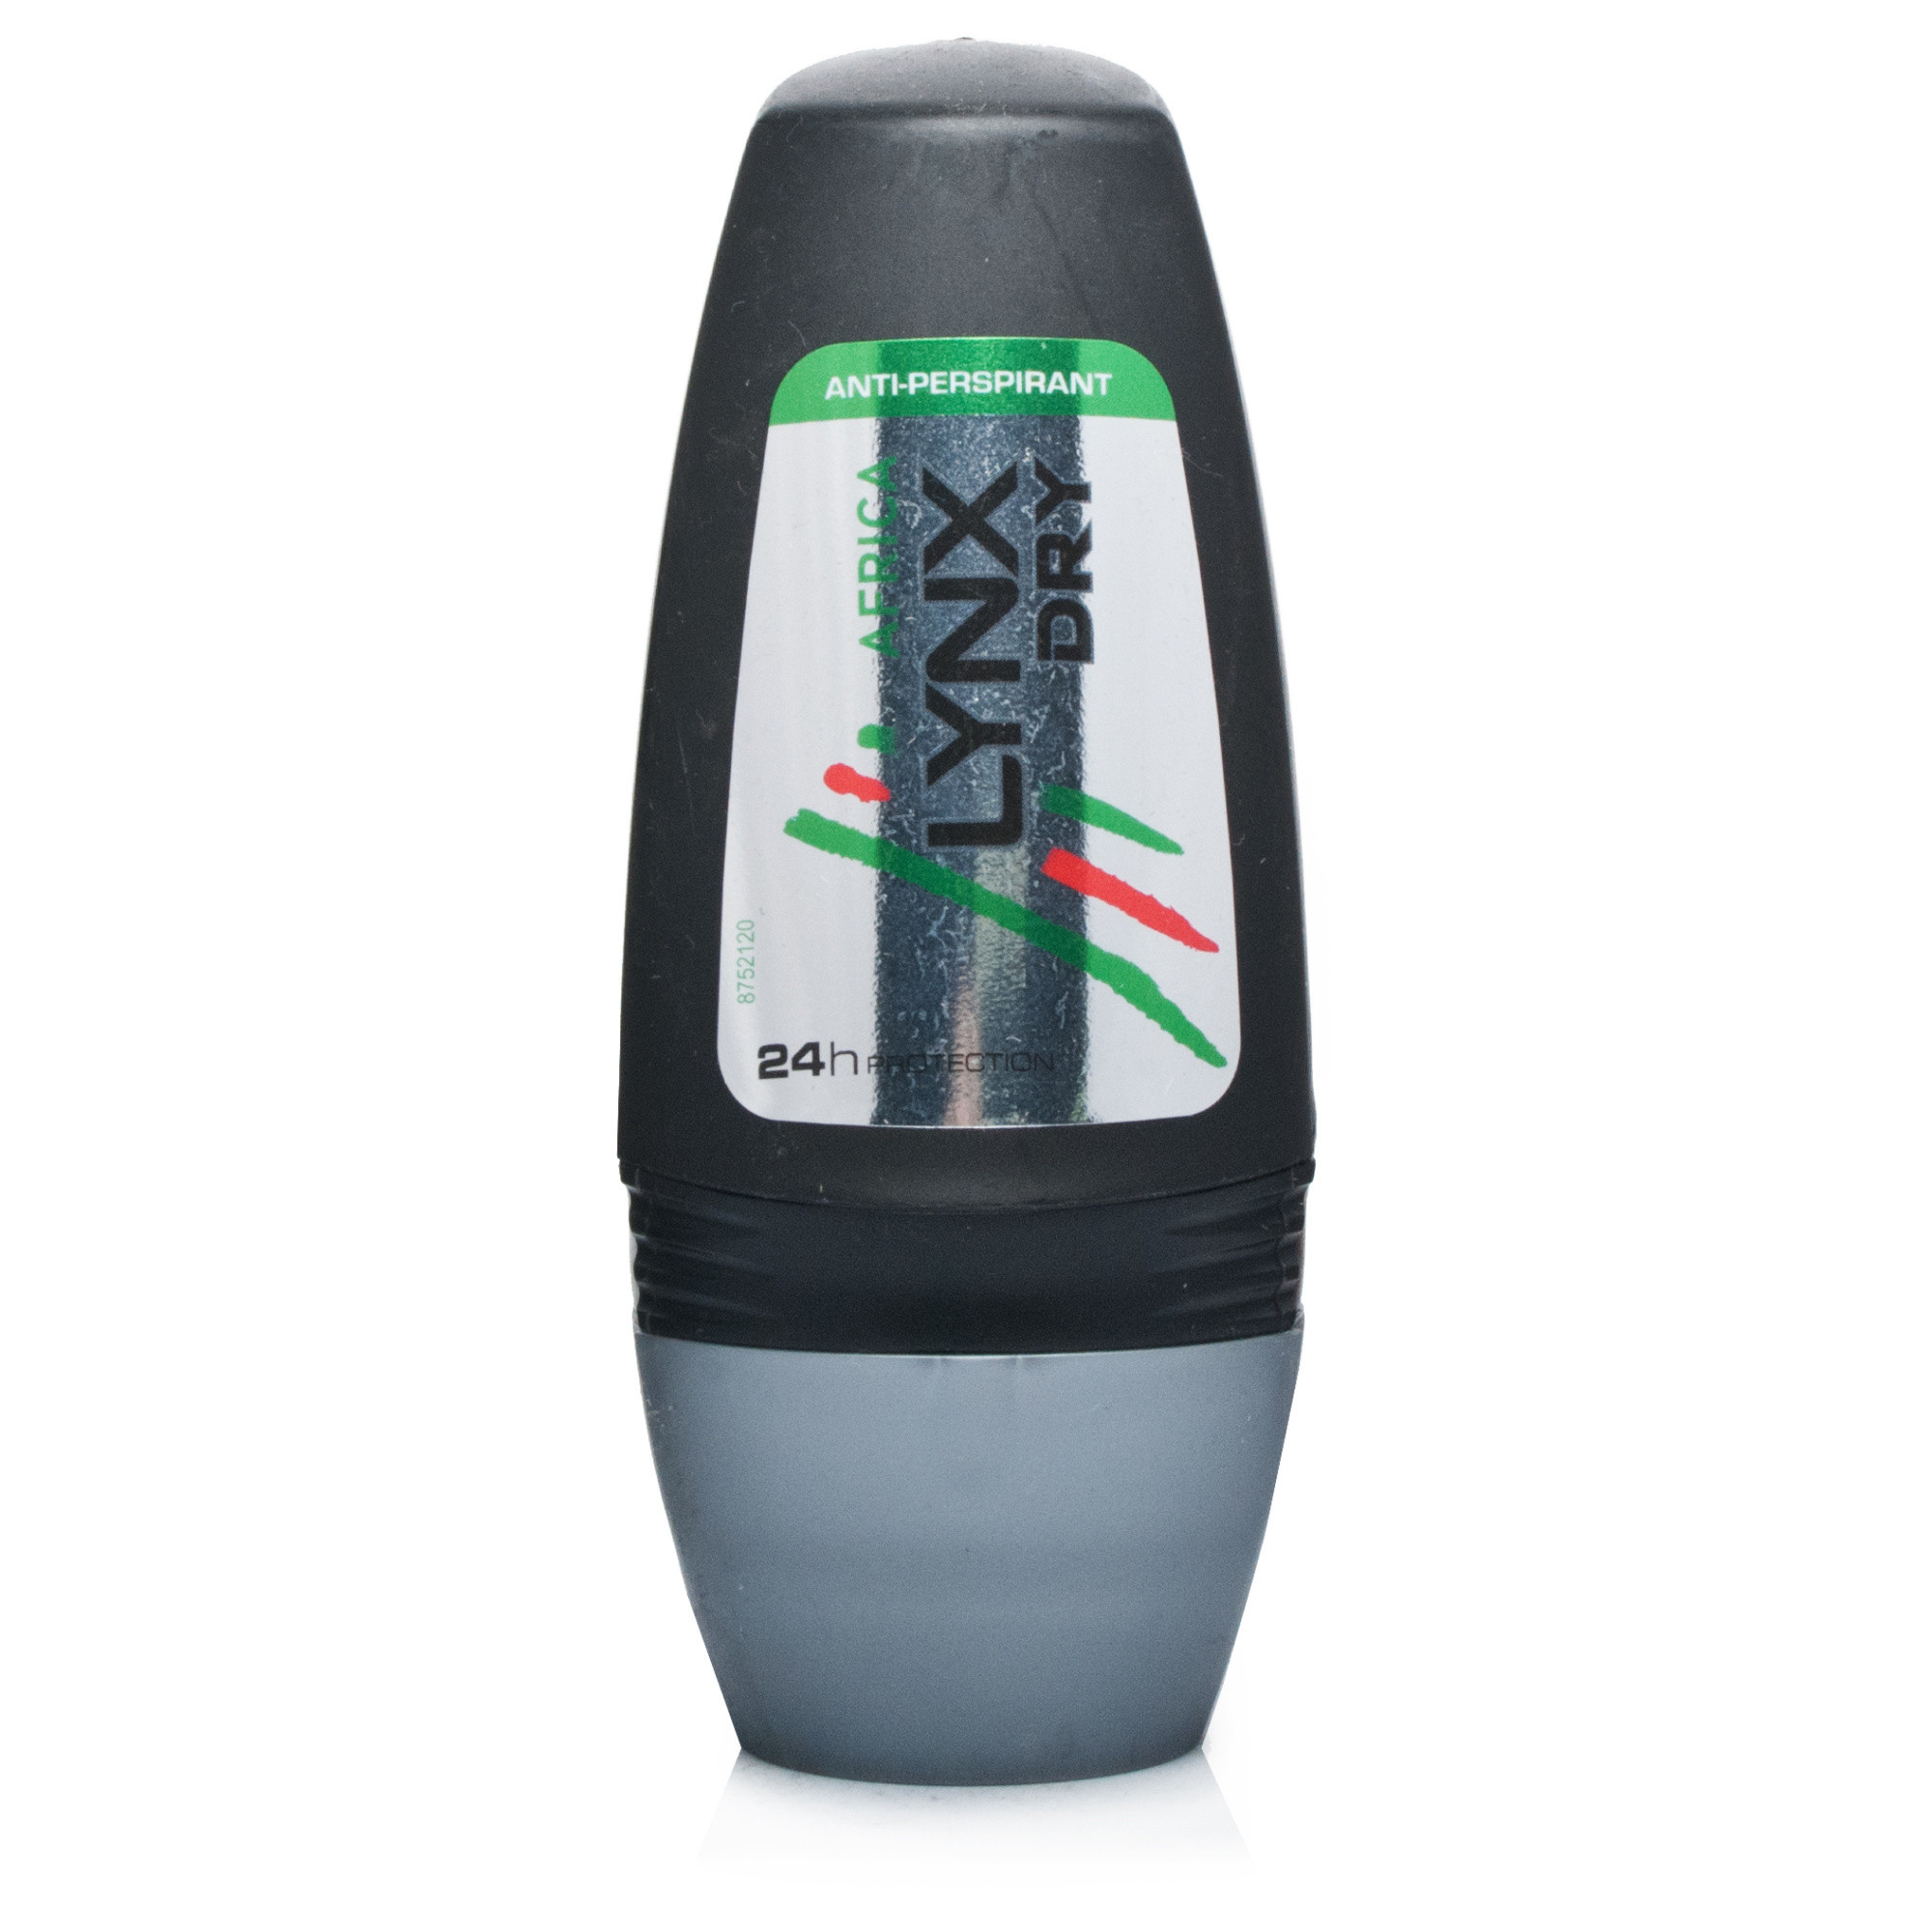 Lynx Dry Africa Anti-Perspirant Roll-On